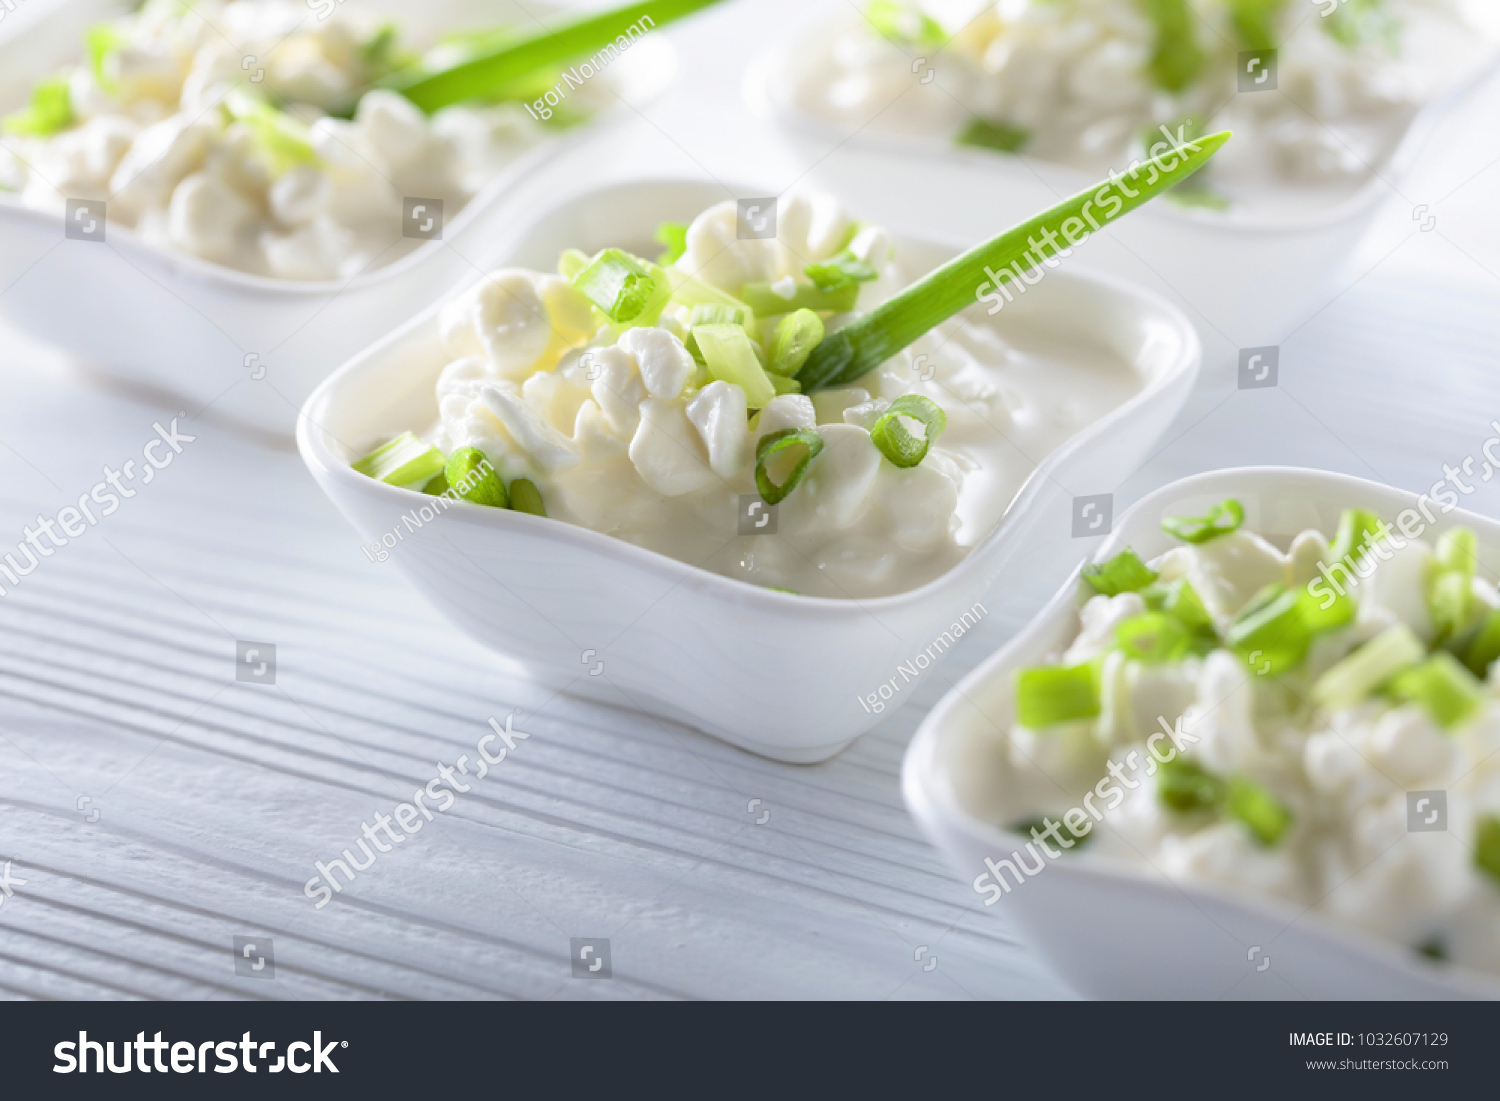 Homemade Cottage Cheese With Green Onions On White Wooden Table.